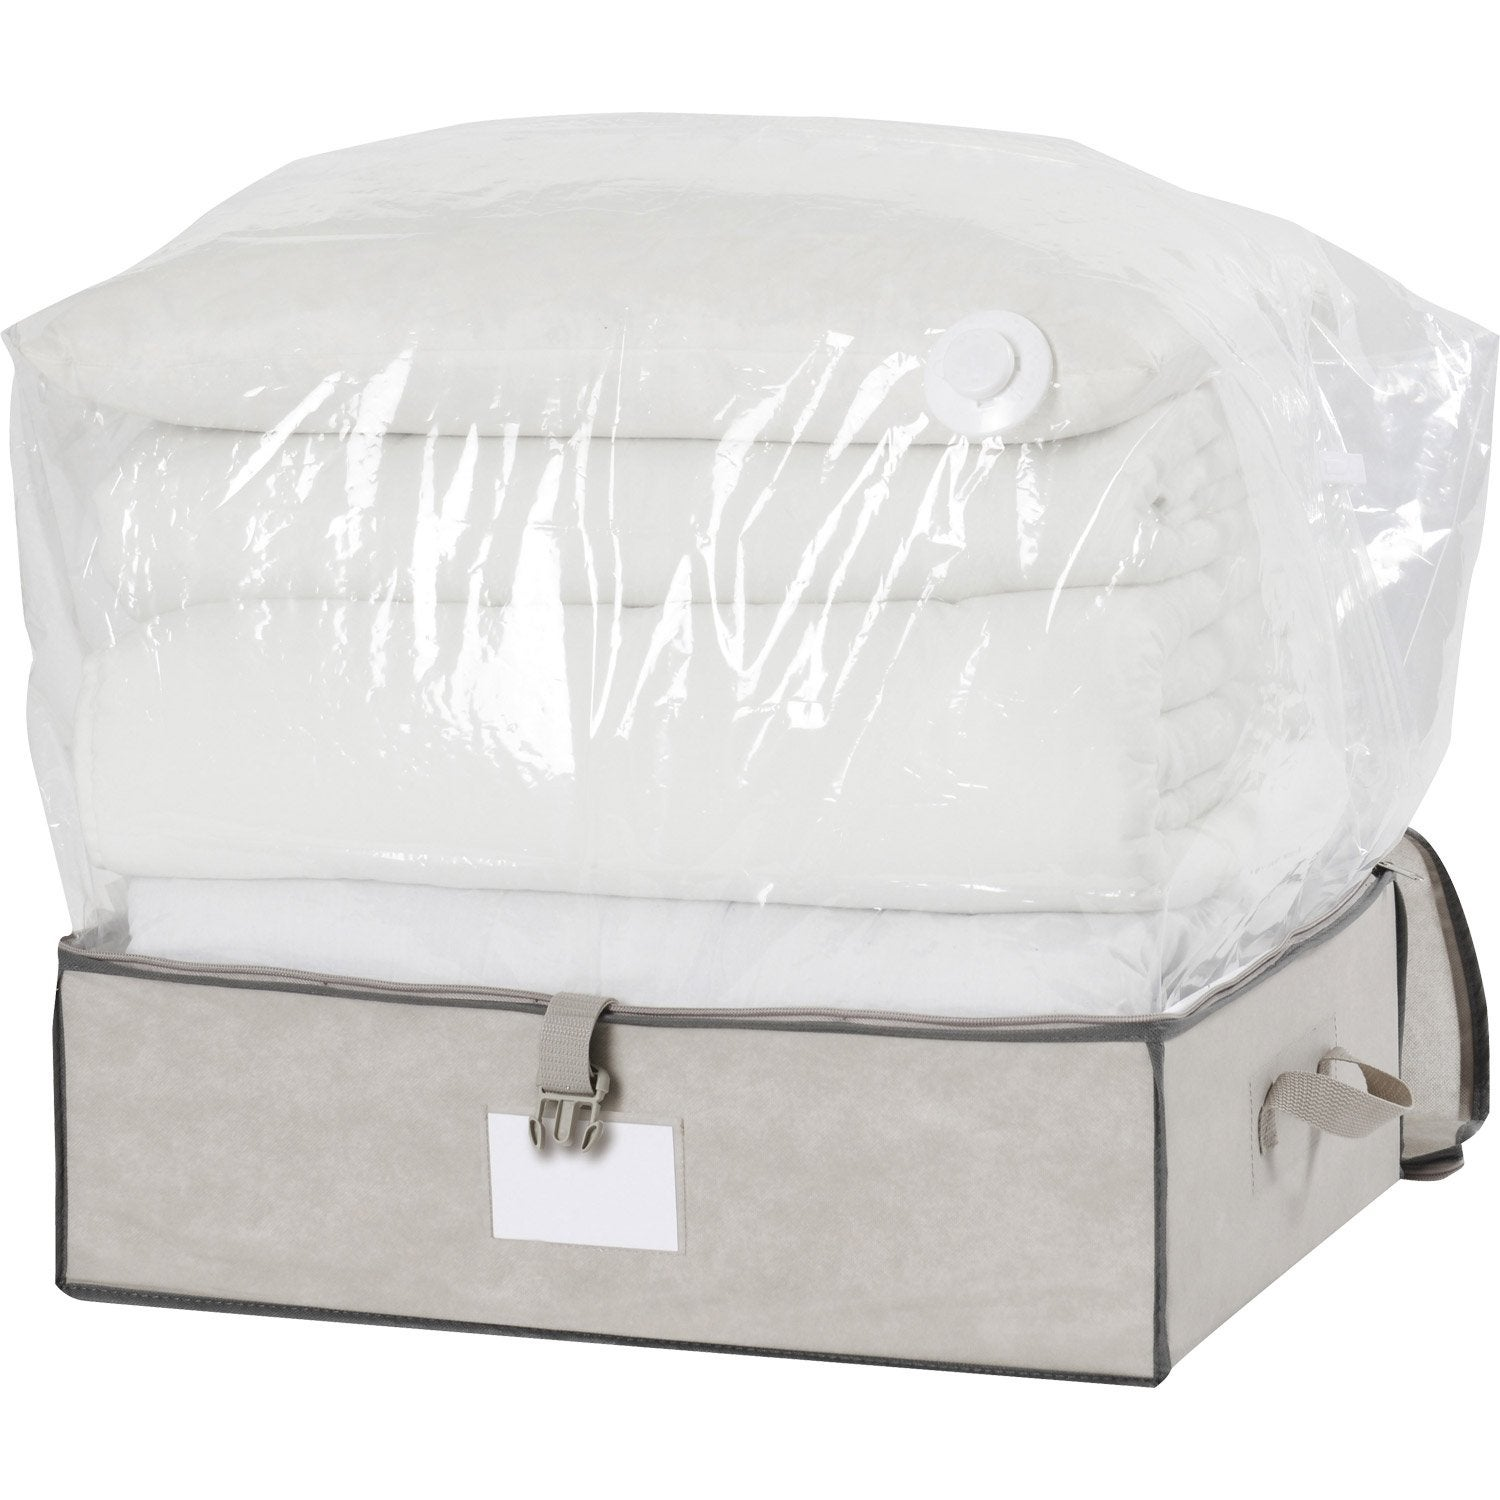 sac rangement sous vide ikea 28 images de rangement slim sac sous vide bo 238 te de. Black Bedroom Furniture Sets. Home Design Ideas